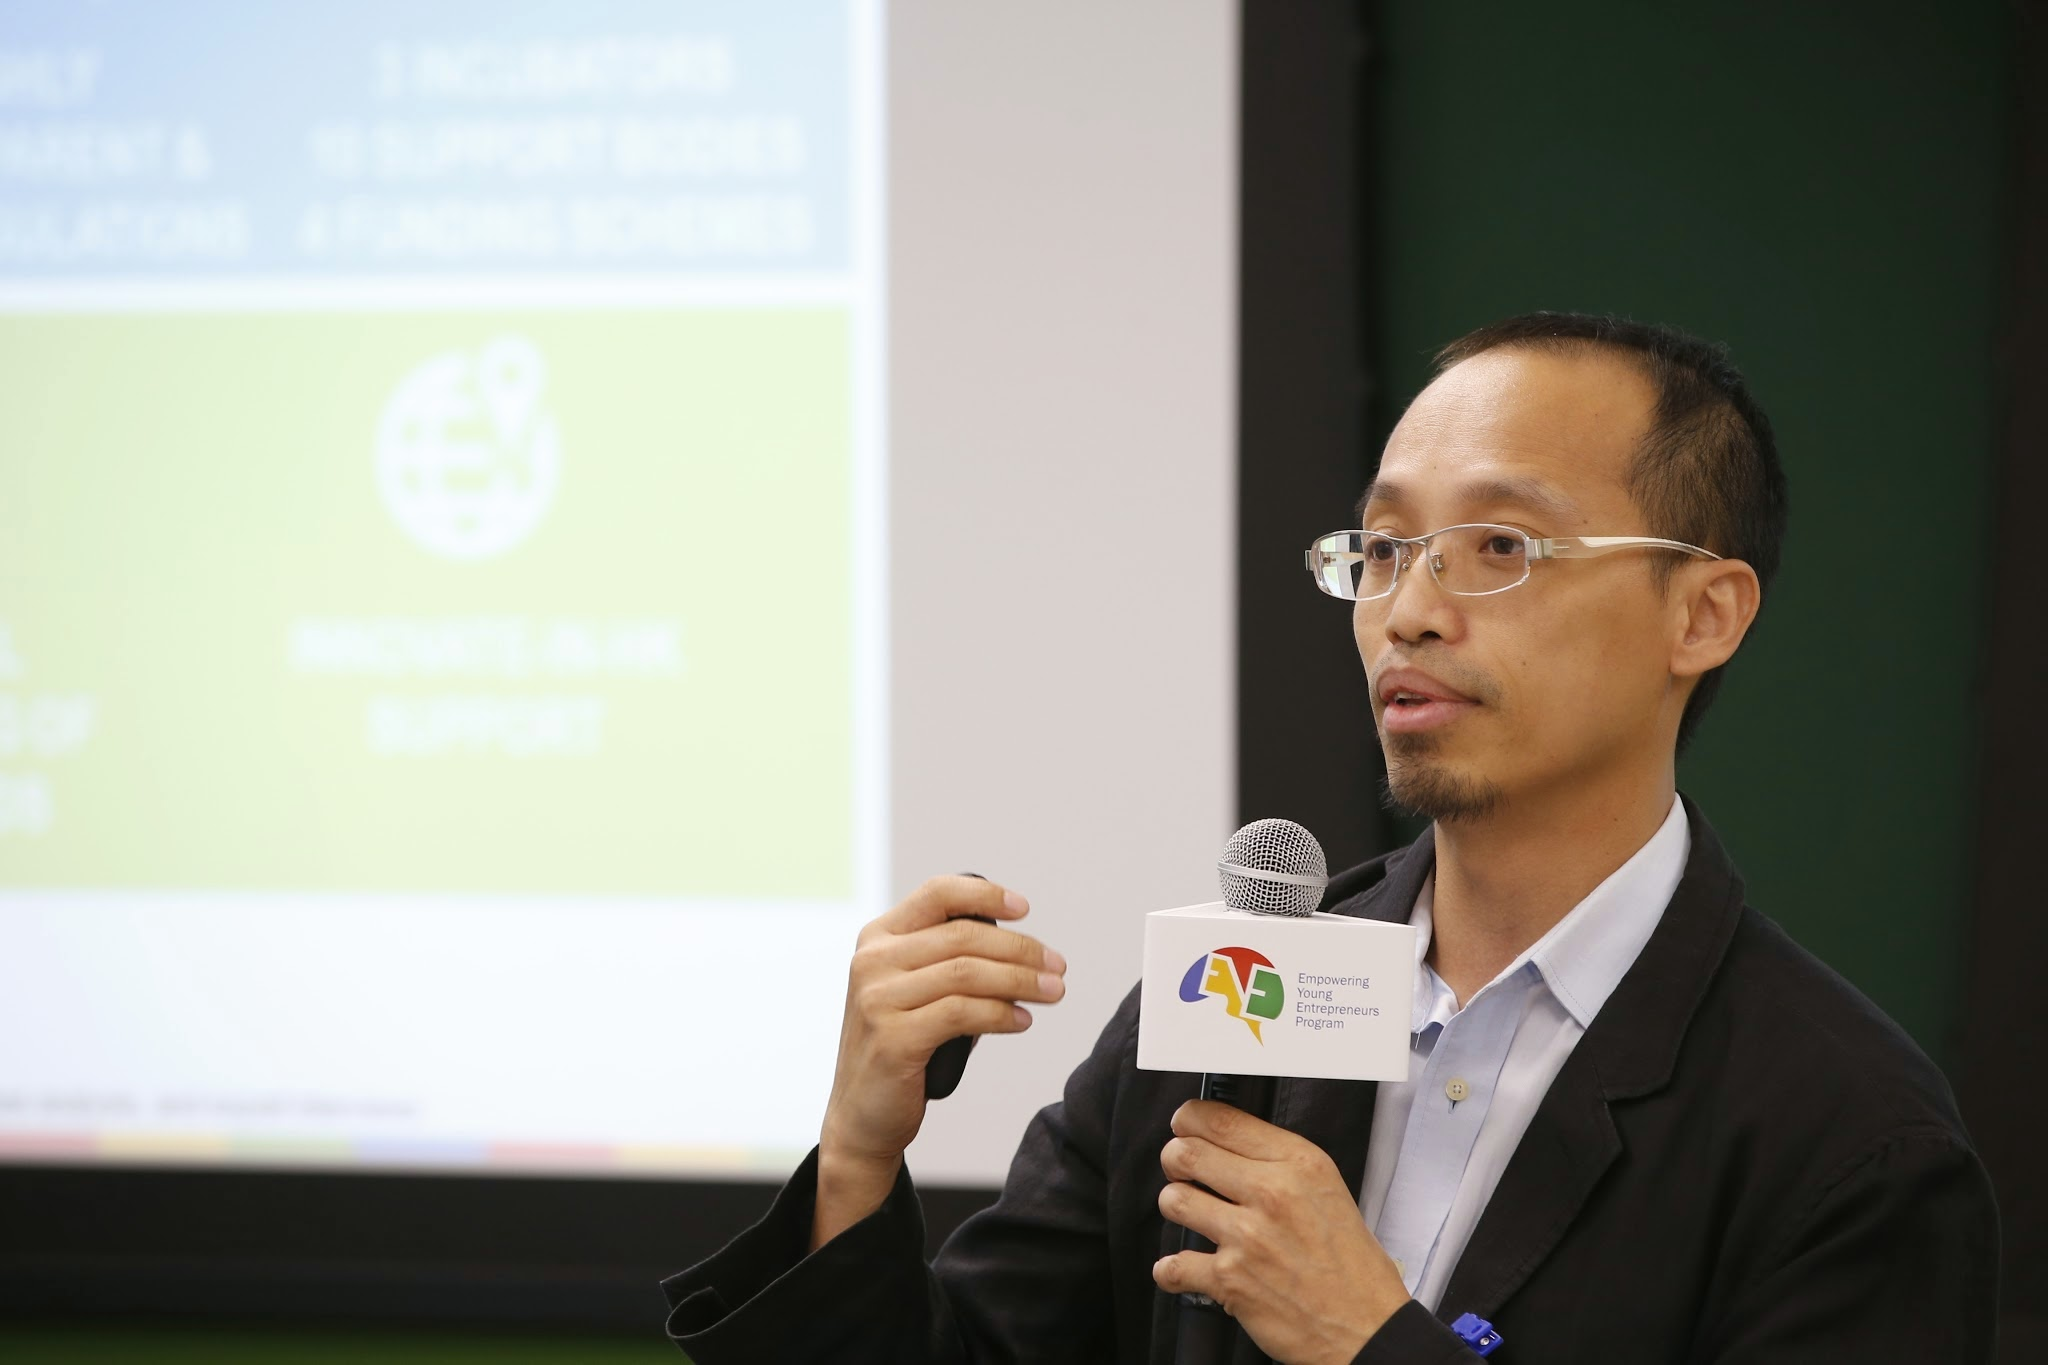 Professor Kevin Au, Director of CUHK Center for Entrepreneurship